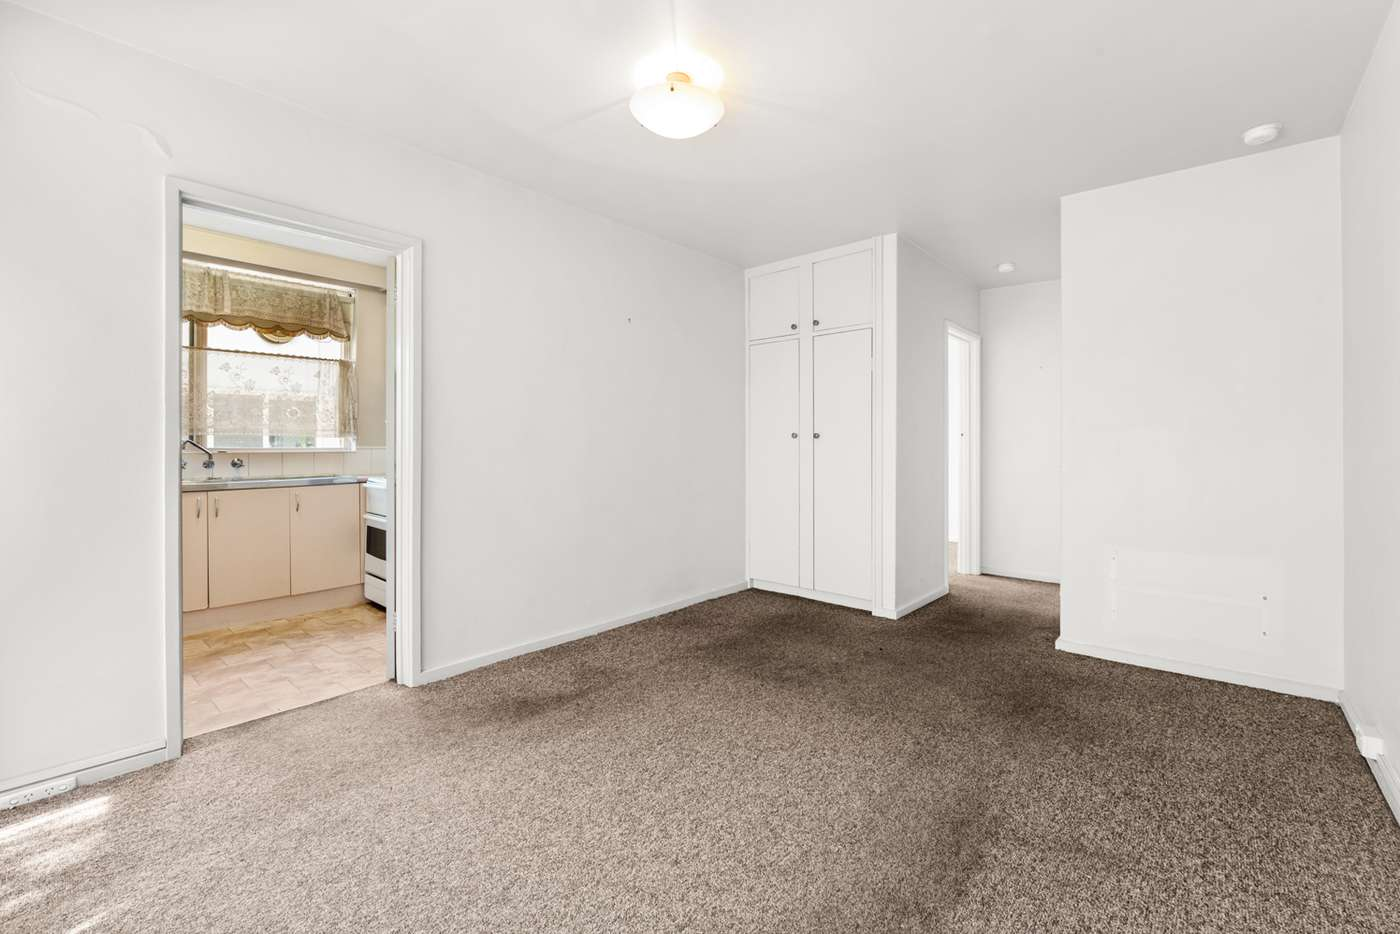 Main view of Homely apartment listing, 6/32 Aberdeen Road, Prahran VIC 3181